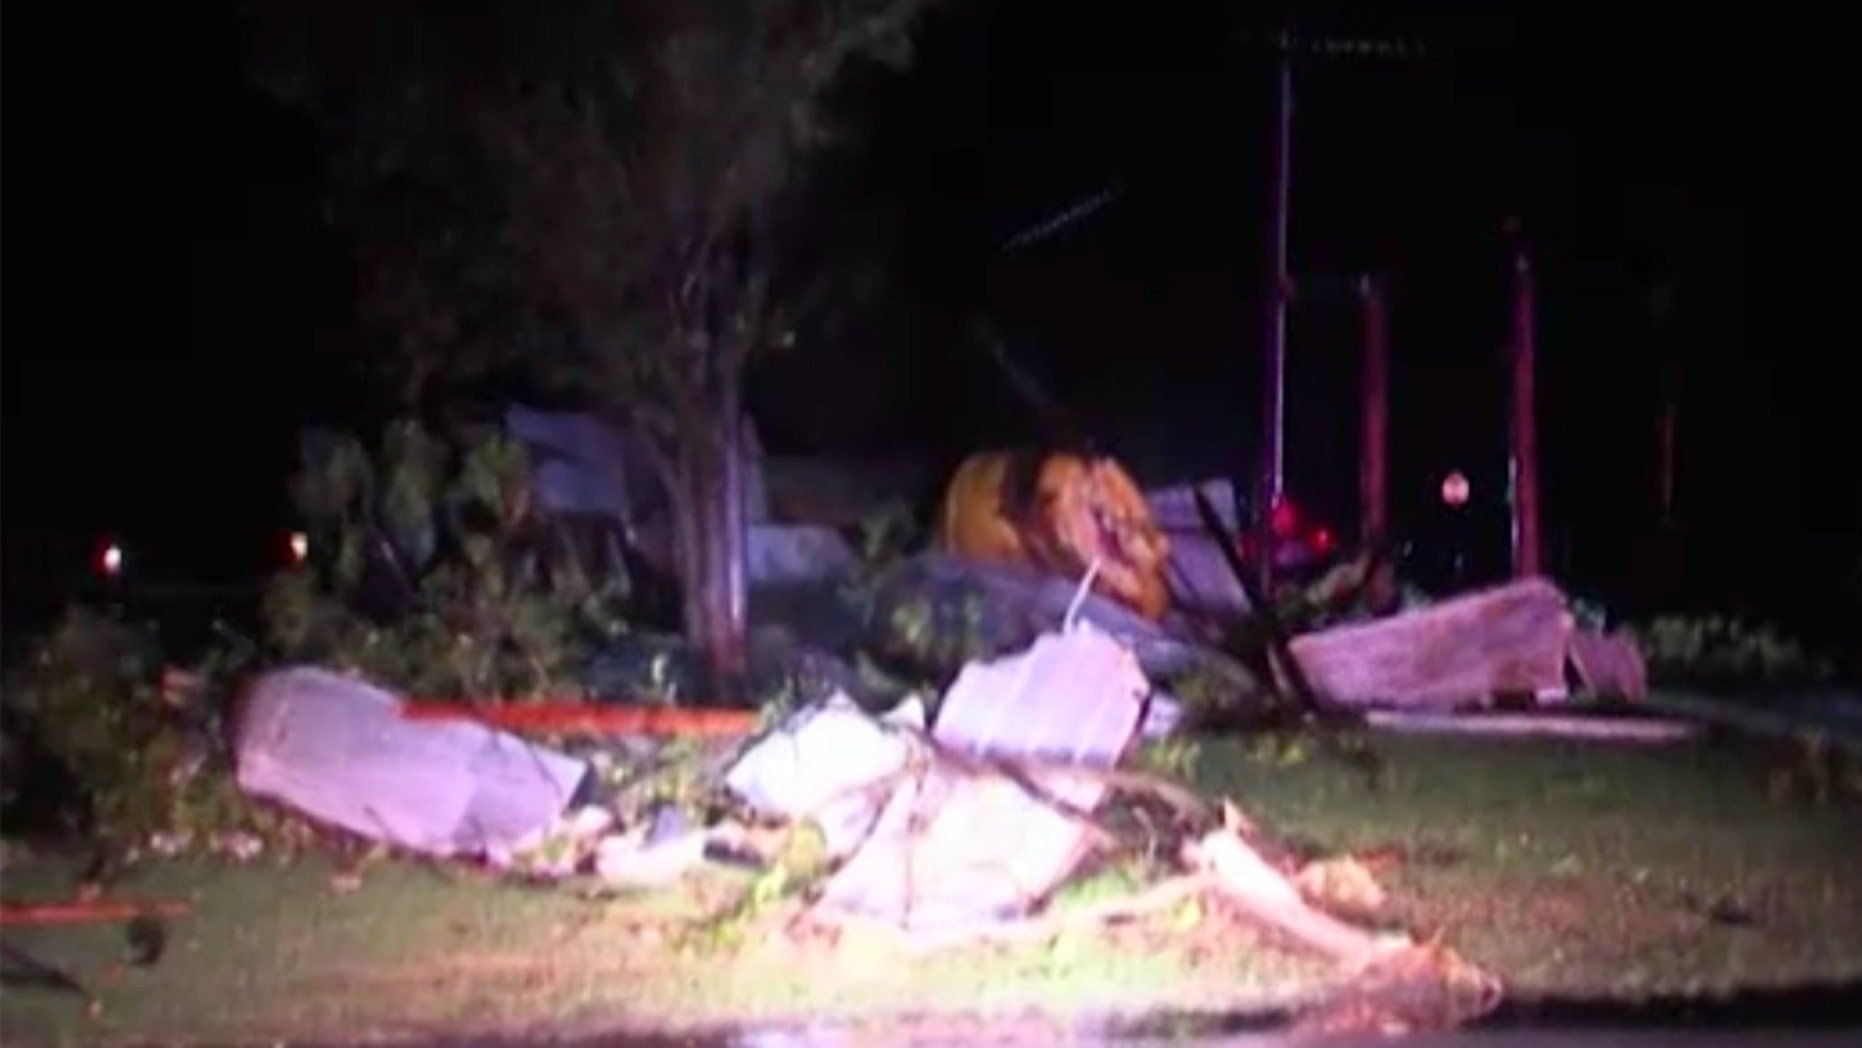 Six small tornadoes were reported in Oklahoma and Texas Sunday night.